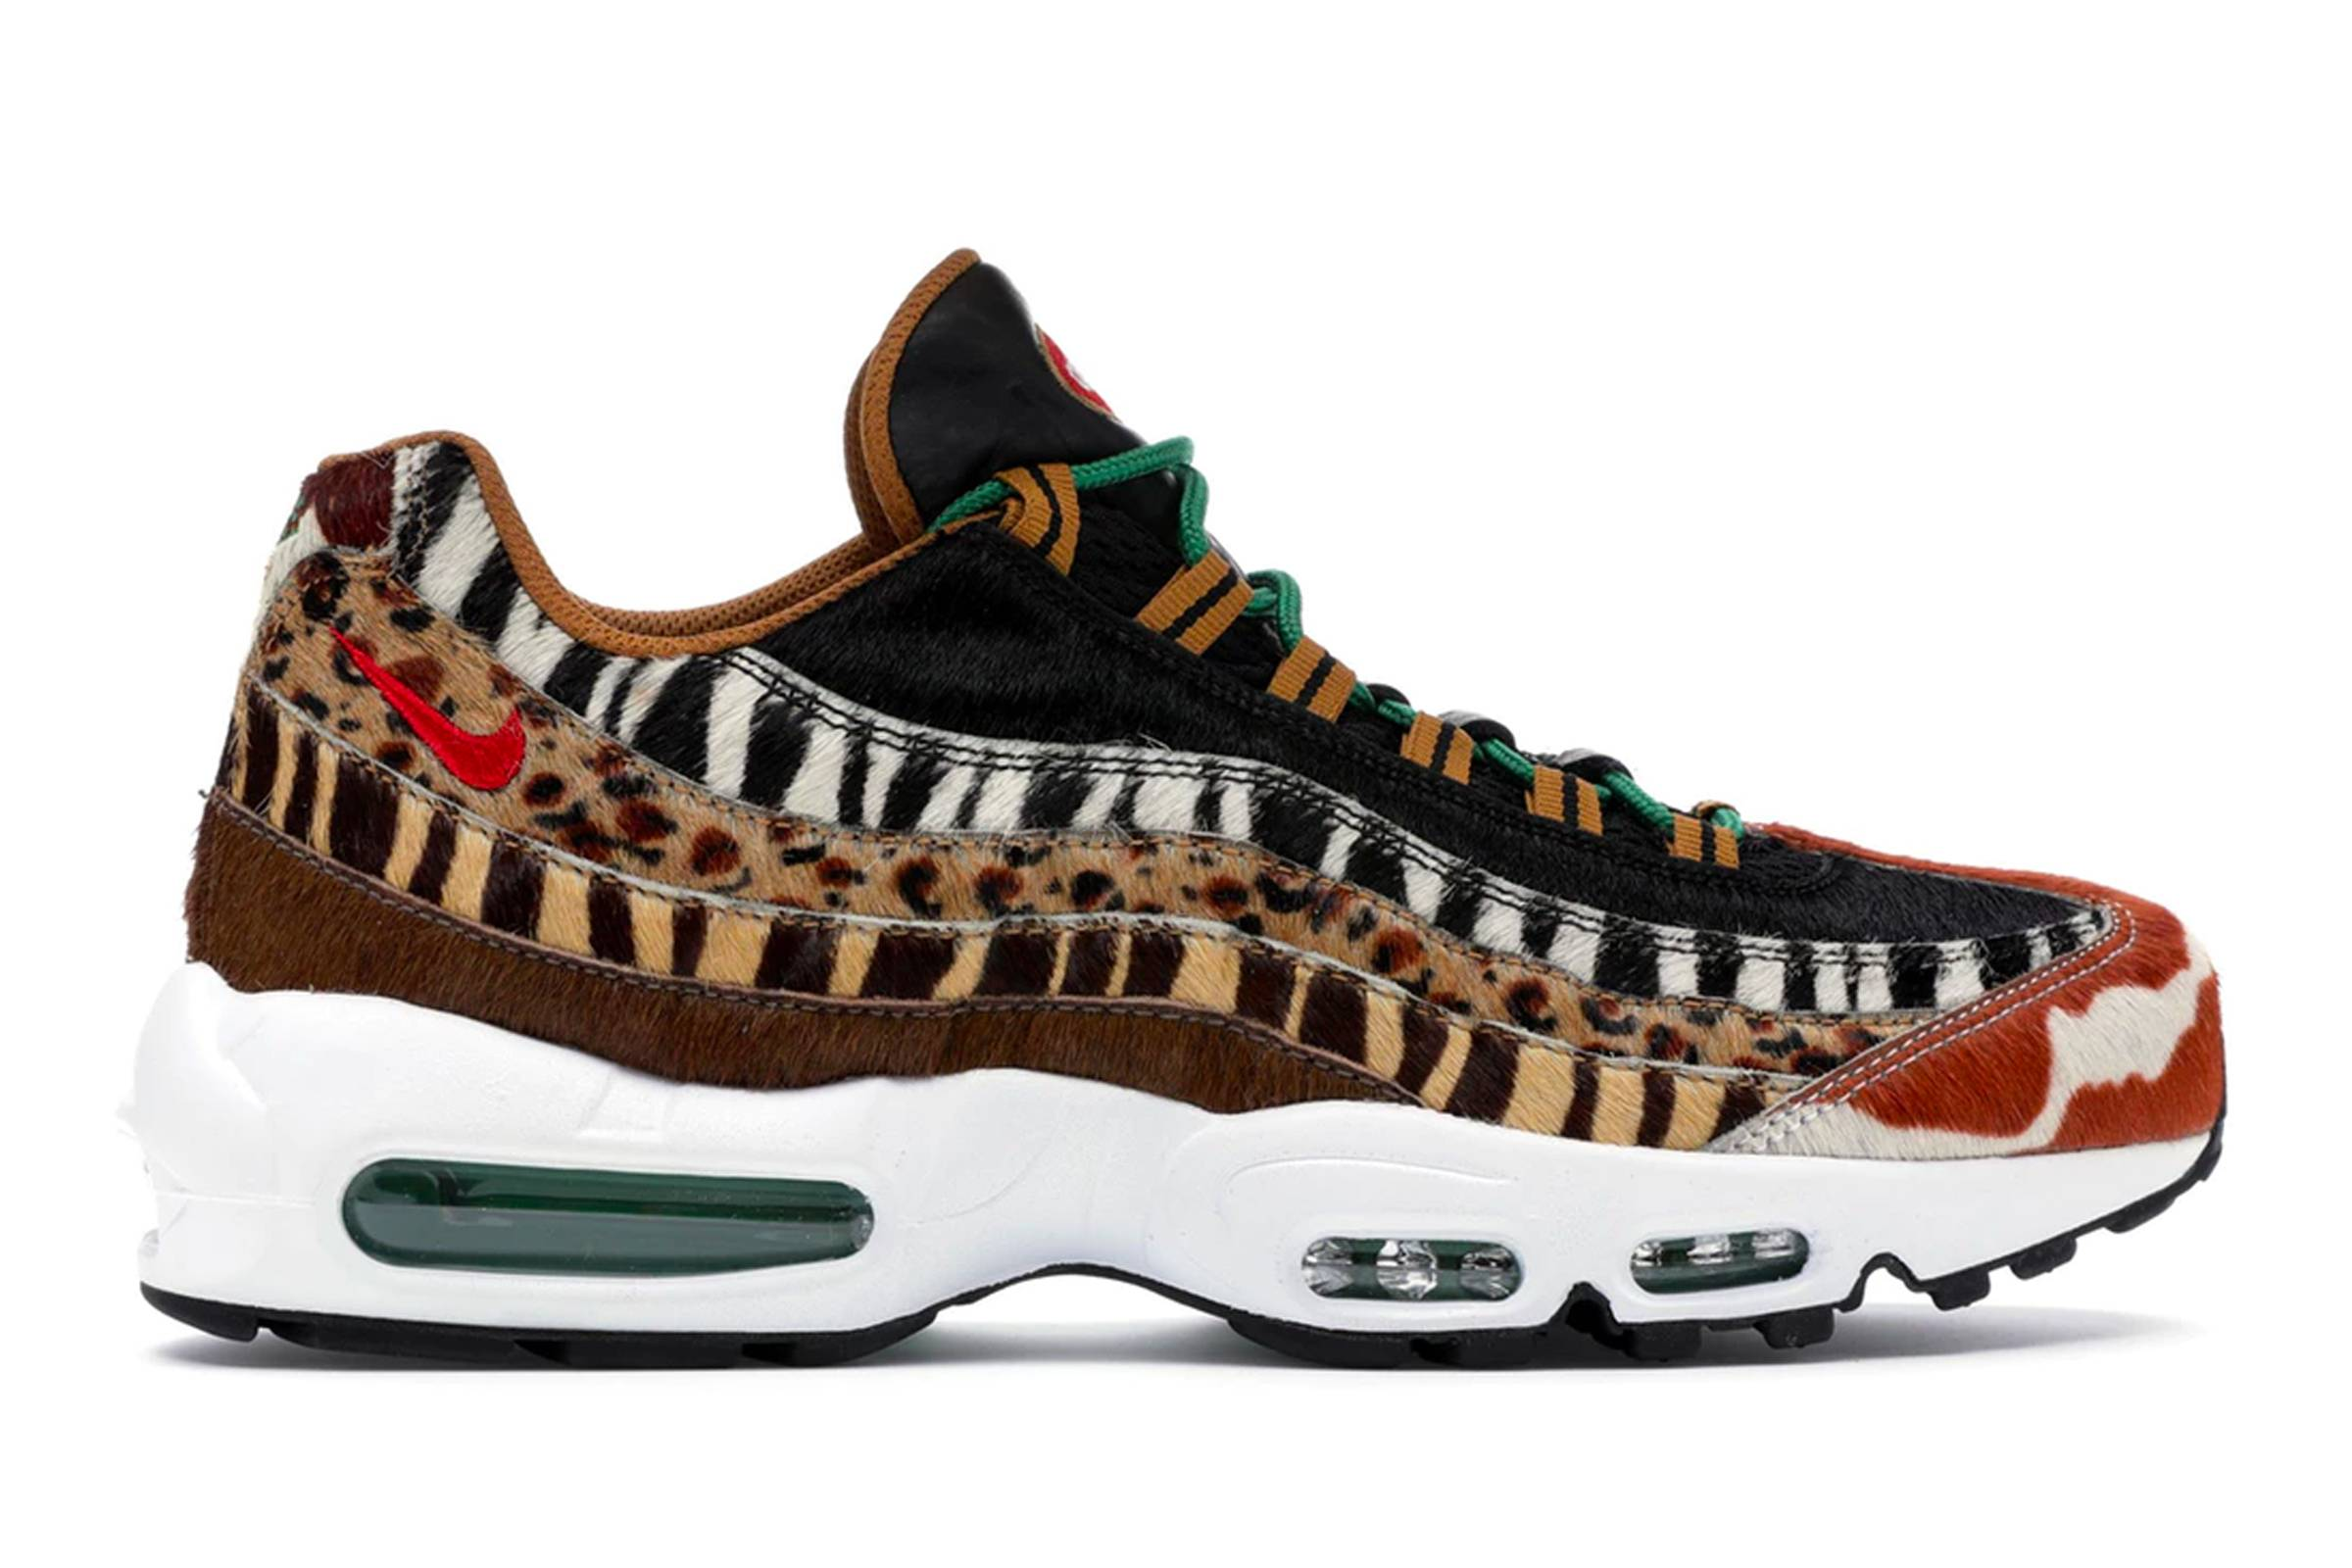 100% authentic affc9 588e1 Atmos x Air Max 95 Animal Pack